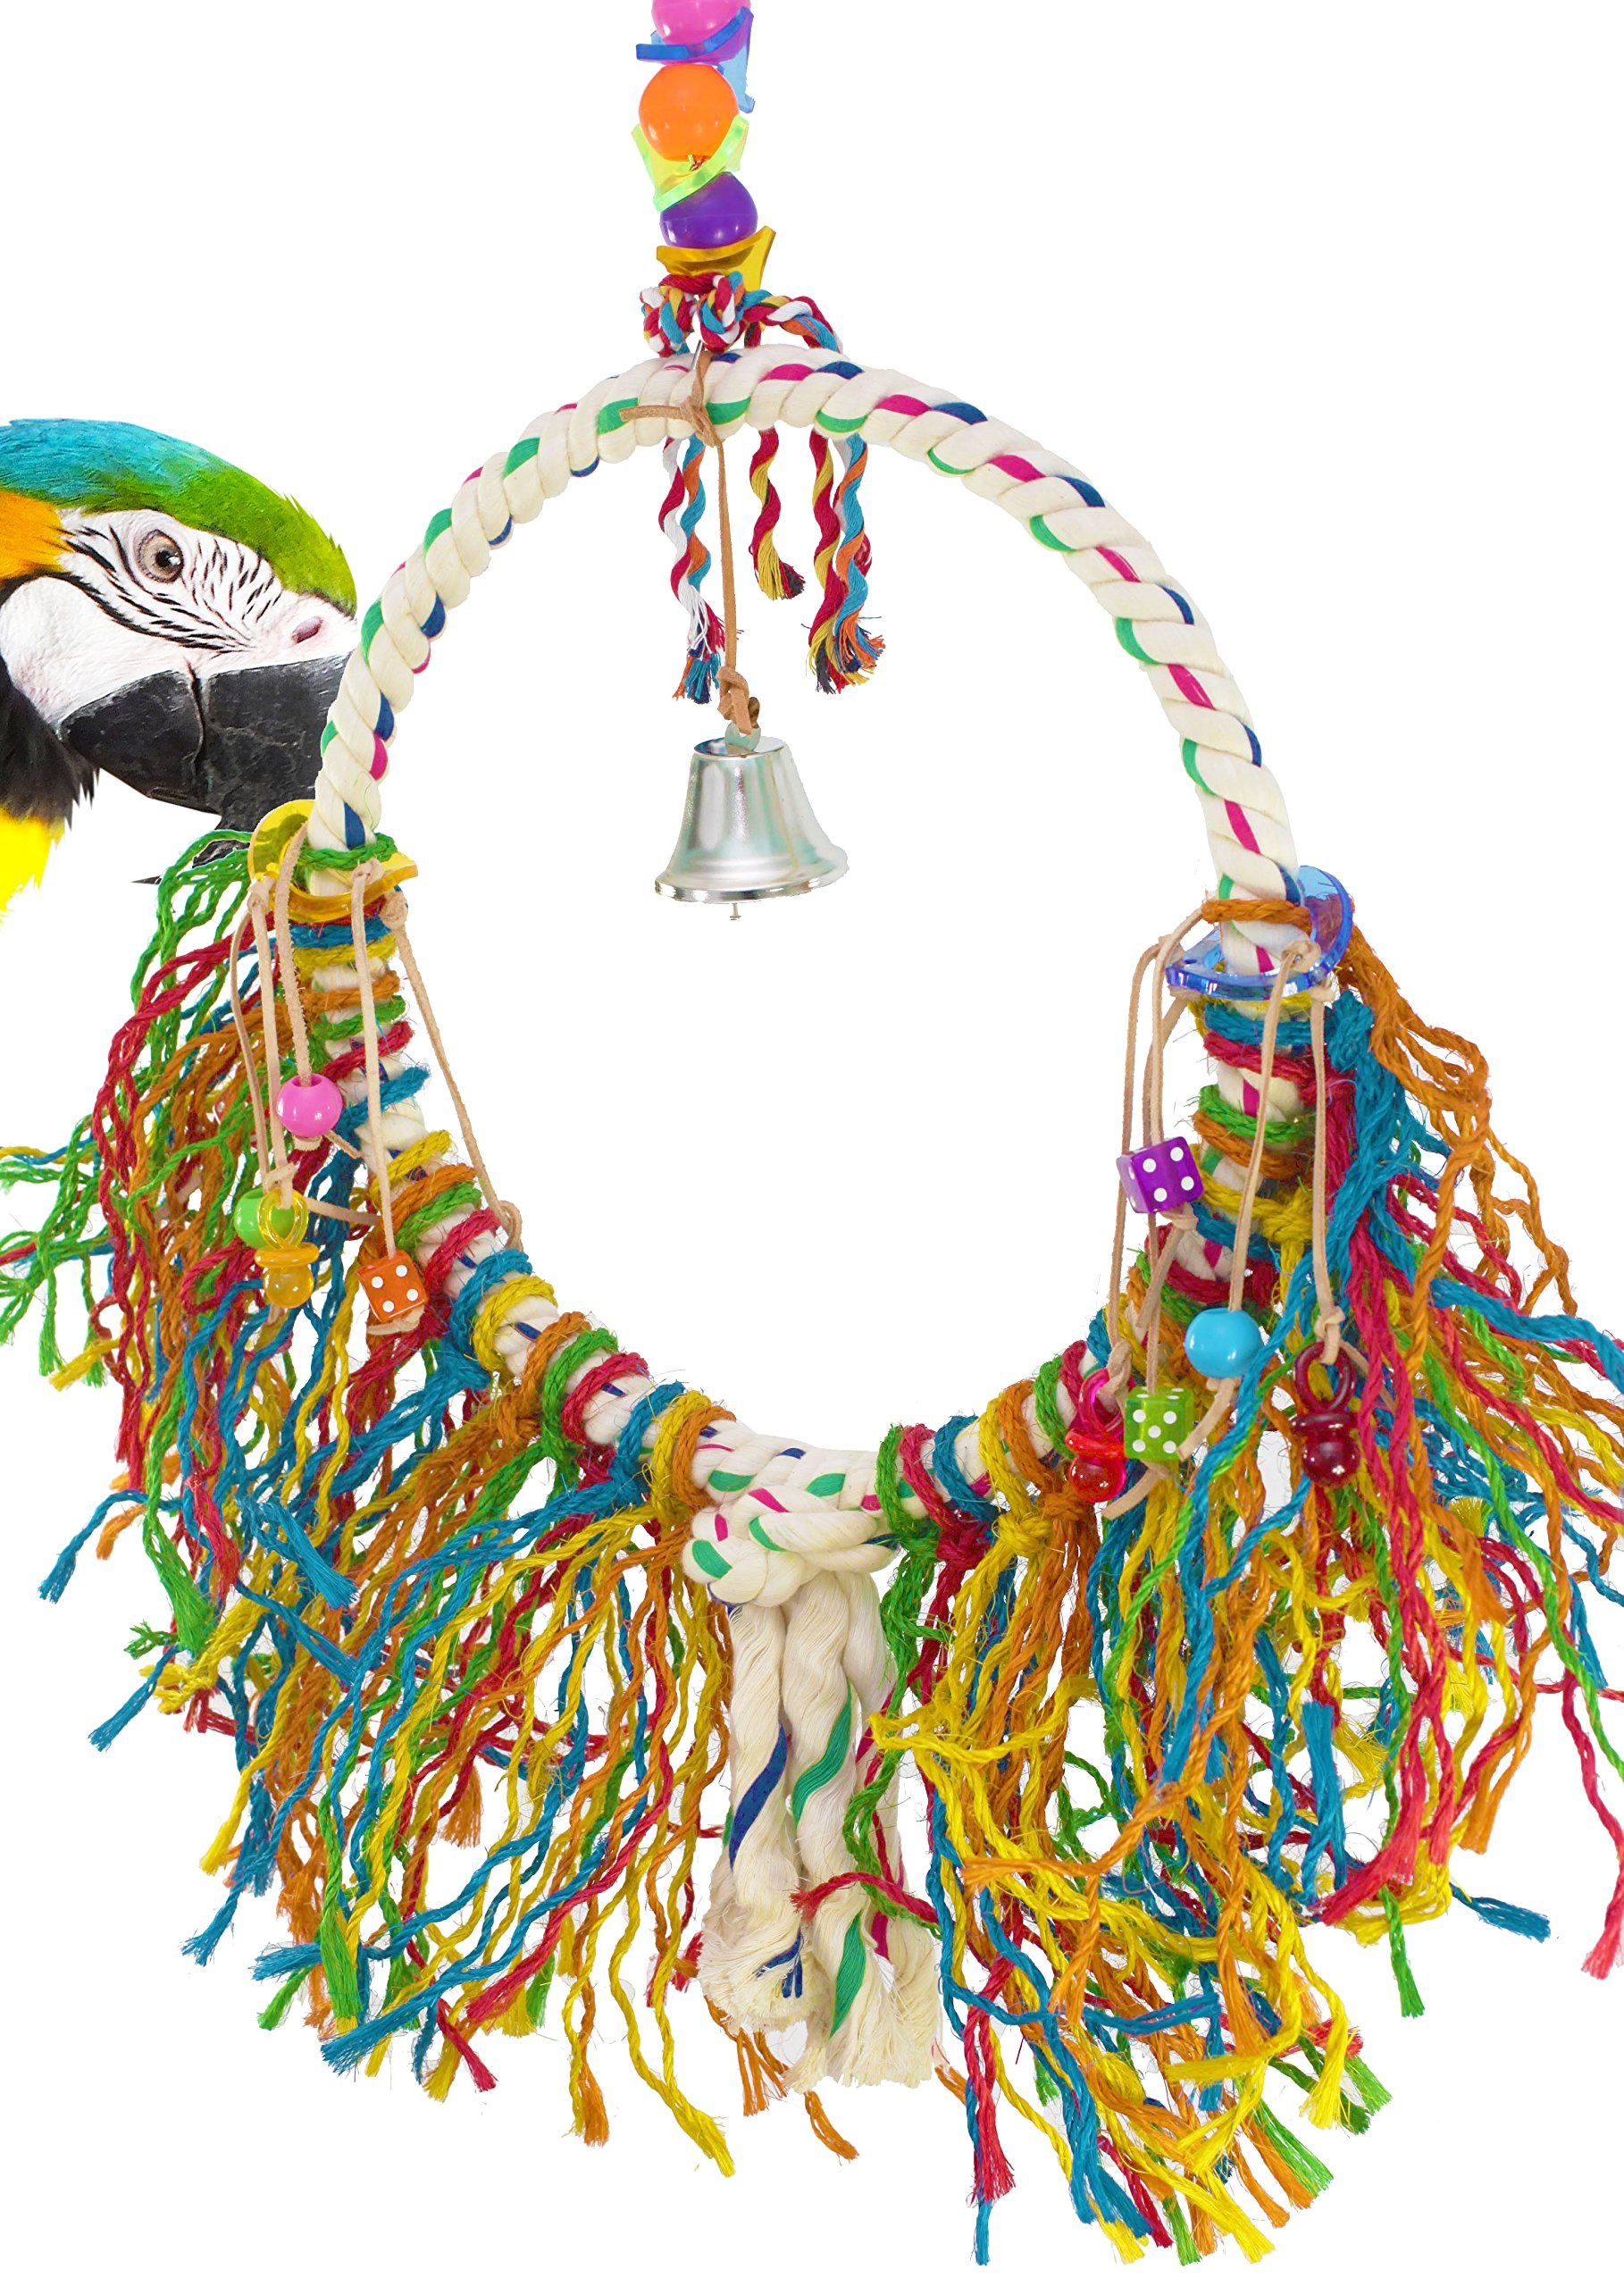 Bonka Bird Toys 1038 Huge Ffuzz Rope Ring Bird Toy Parrot Cage Rings Cages Cockatoo Macaw Amazon Parrots Aviary Ropes Birds by Bonka Bird Toys